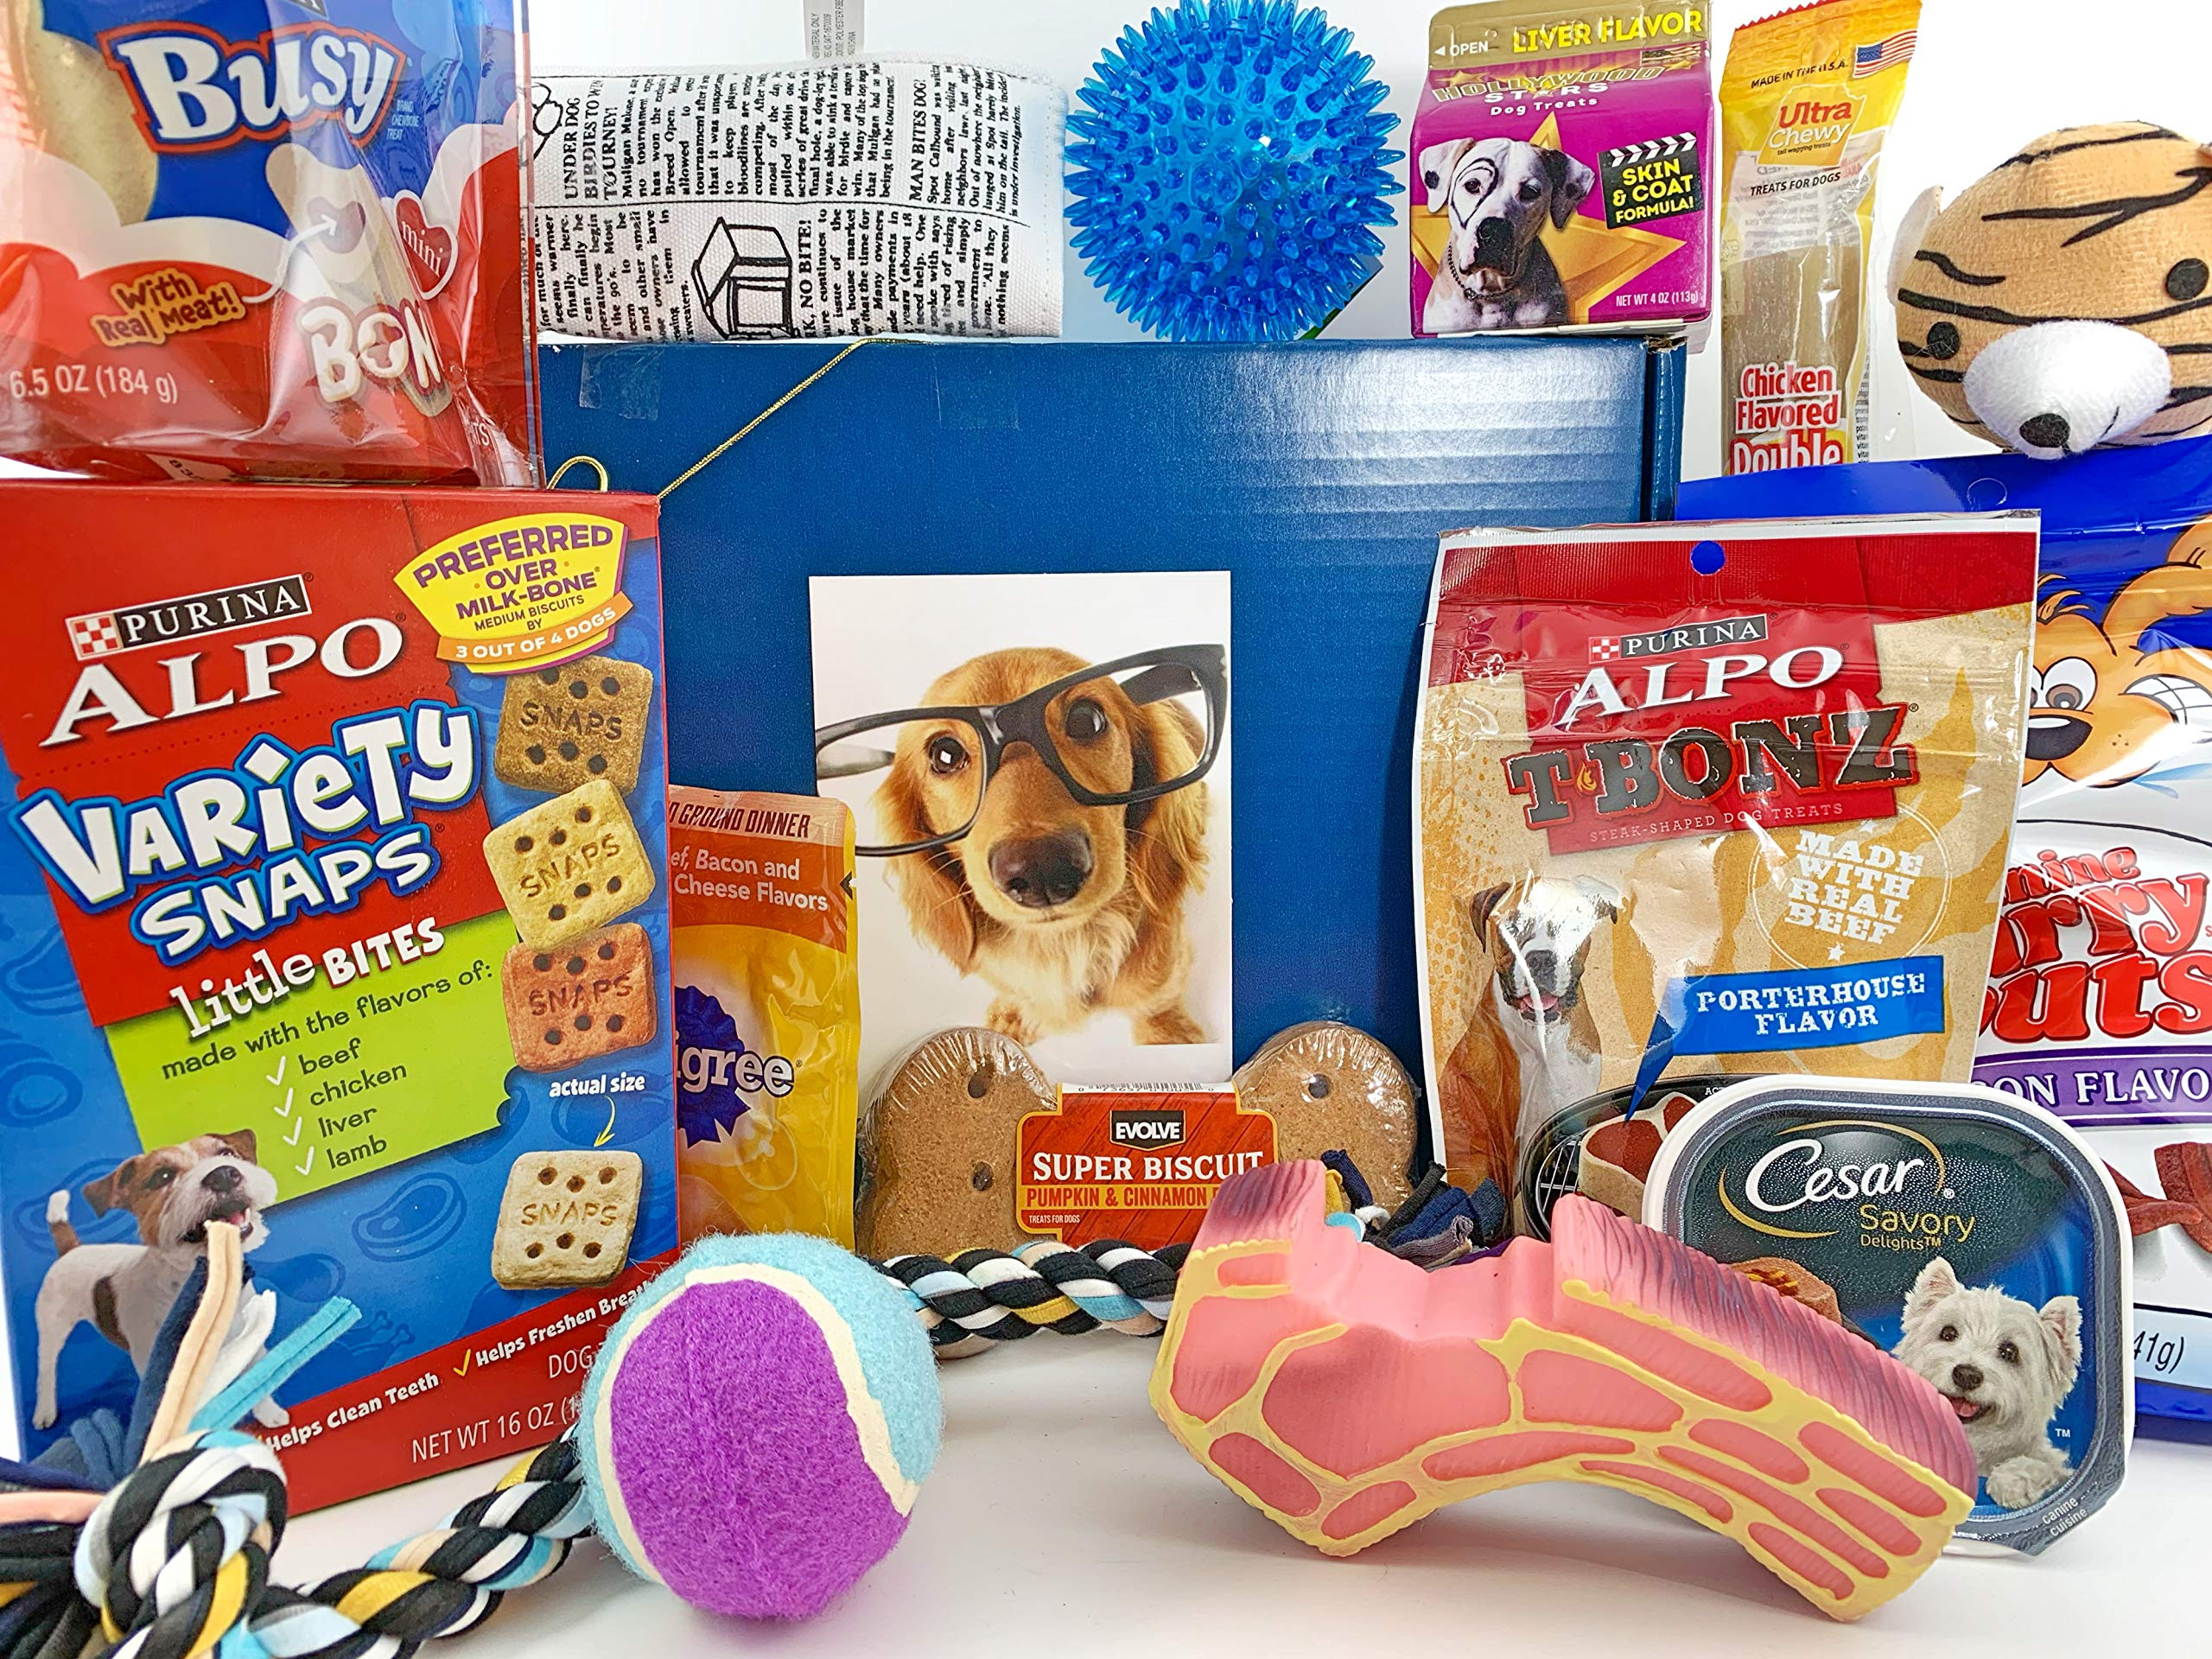 Jumbo Dog Gift Box Basket for Favorite Canine Fur Baby Perfect for Dog Lover Dog Birthday Christmas Furry Pet Friend Prime Treats Toys 1